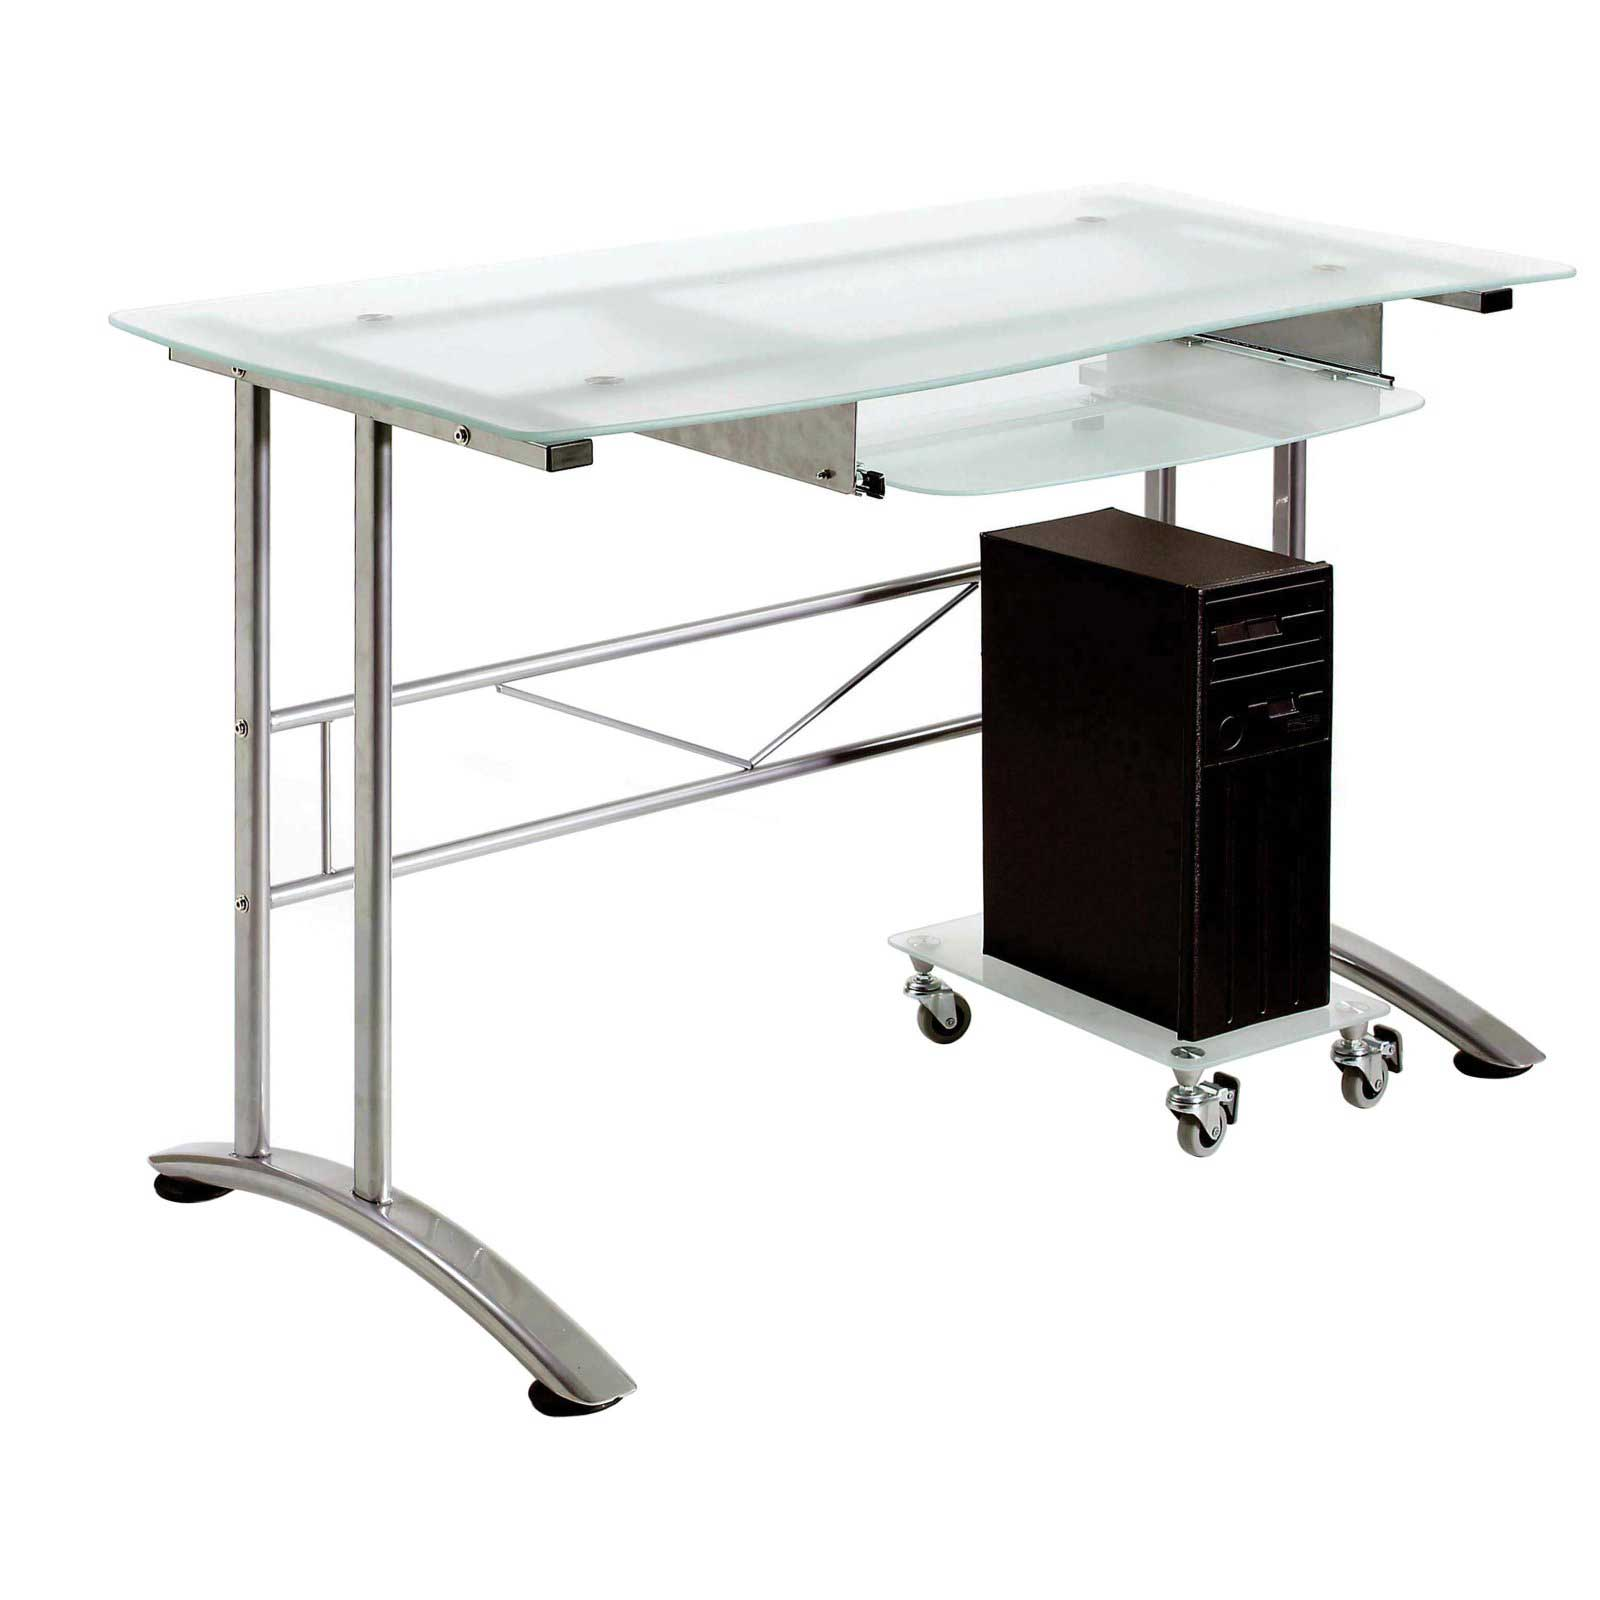 Modern glass desks for flexible work Designer glass computer desk